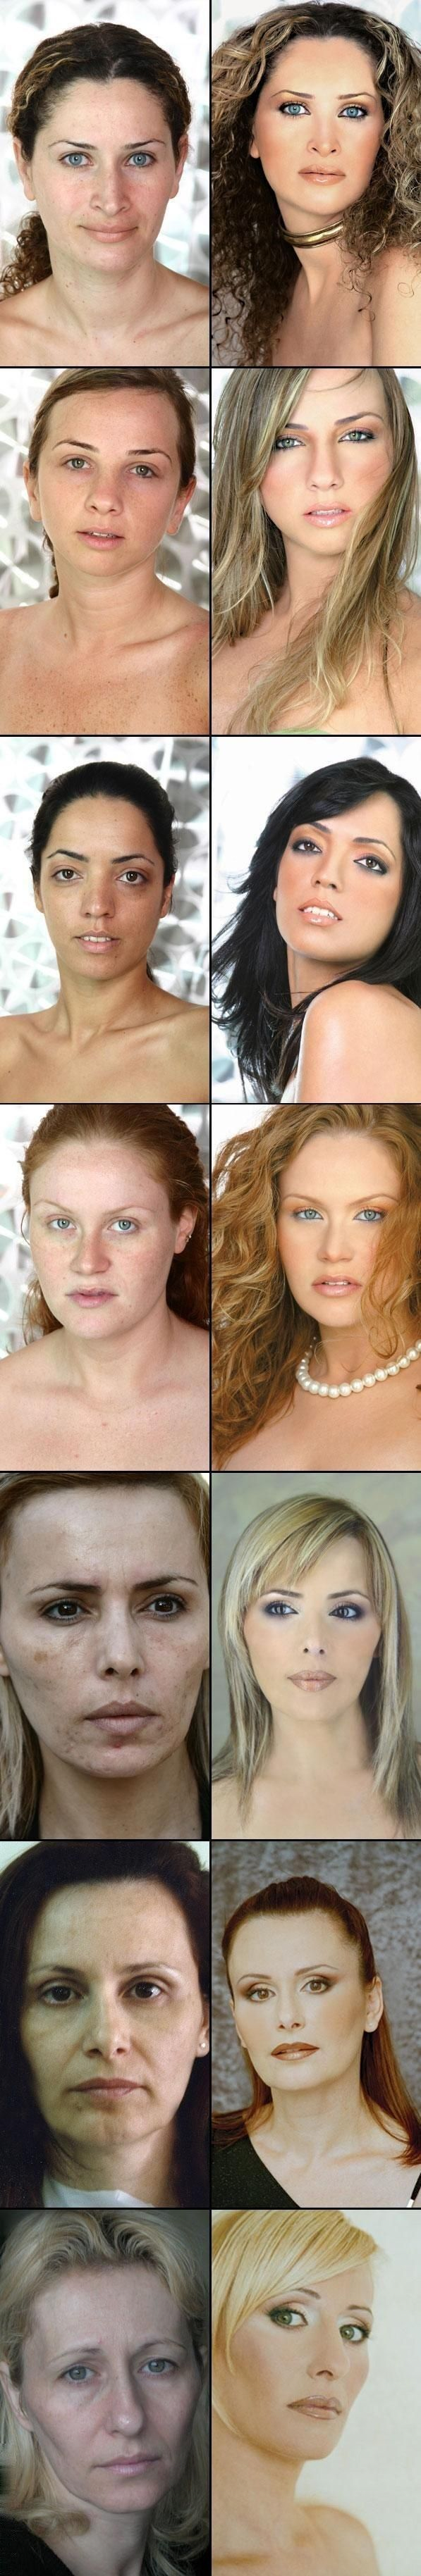 Photo of #Celebrity #Makeup #Makeup Techniques weird Celebrity With and Without Makeup   …,  #celebr…